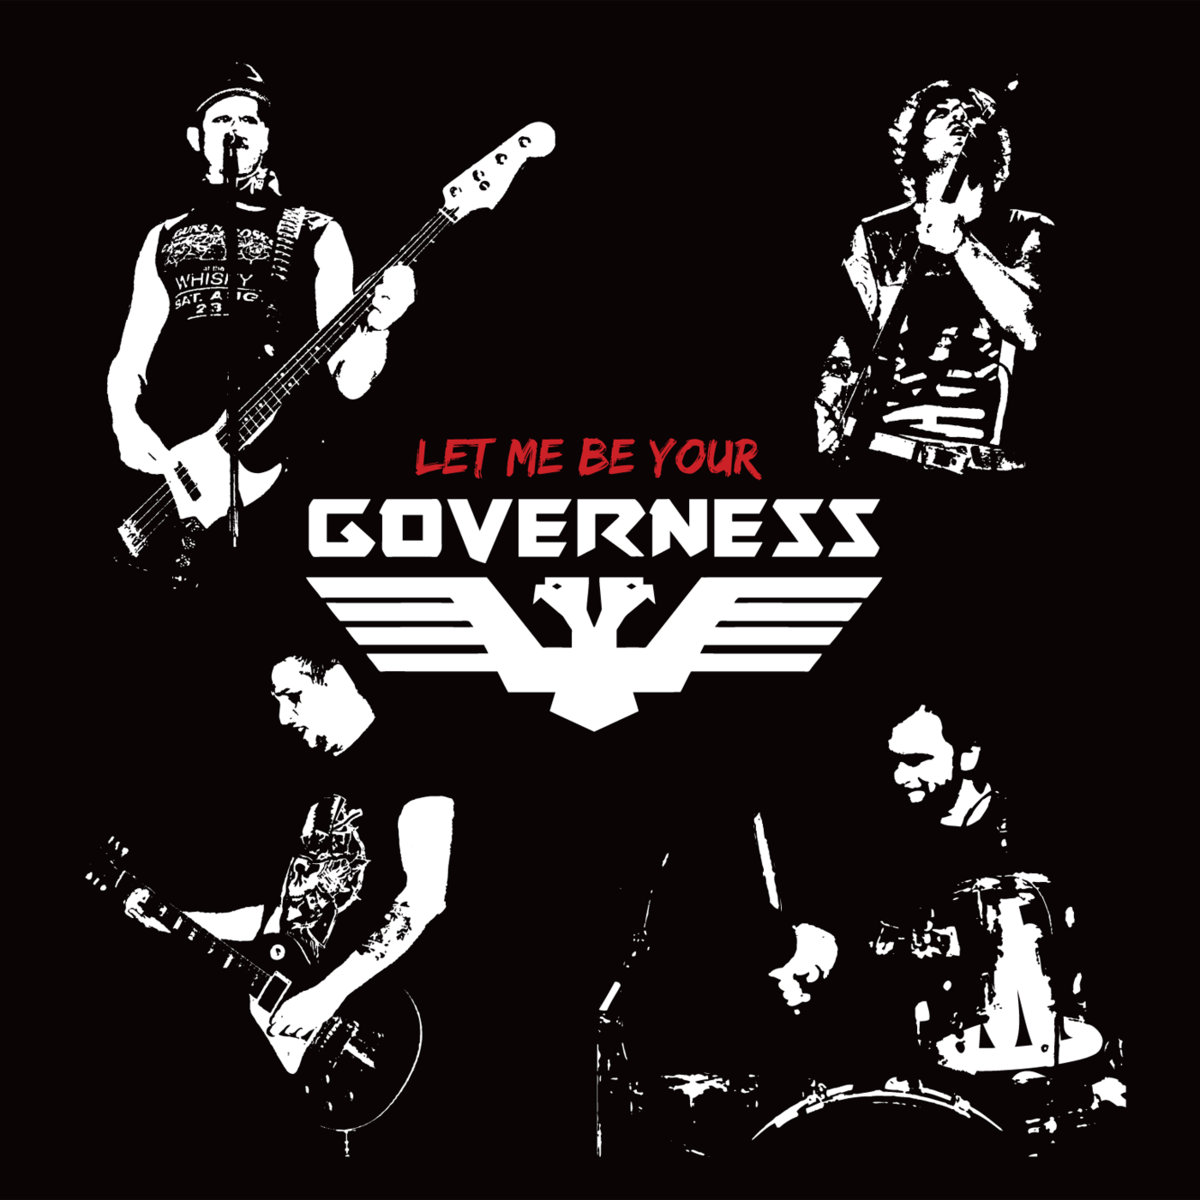 Governess –  (Let Me Be Your) Governess